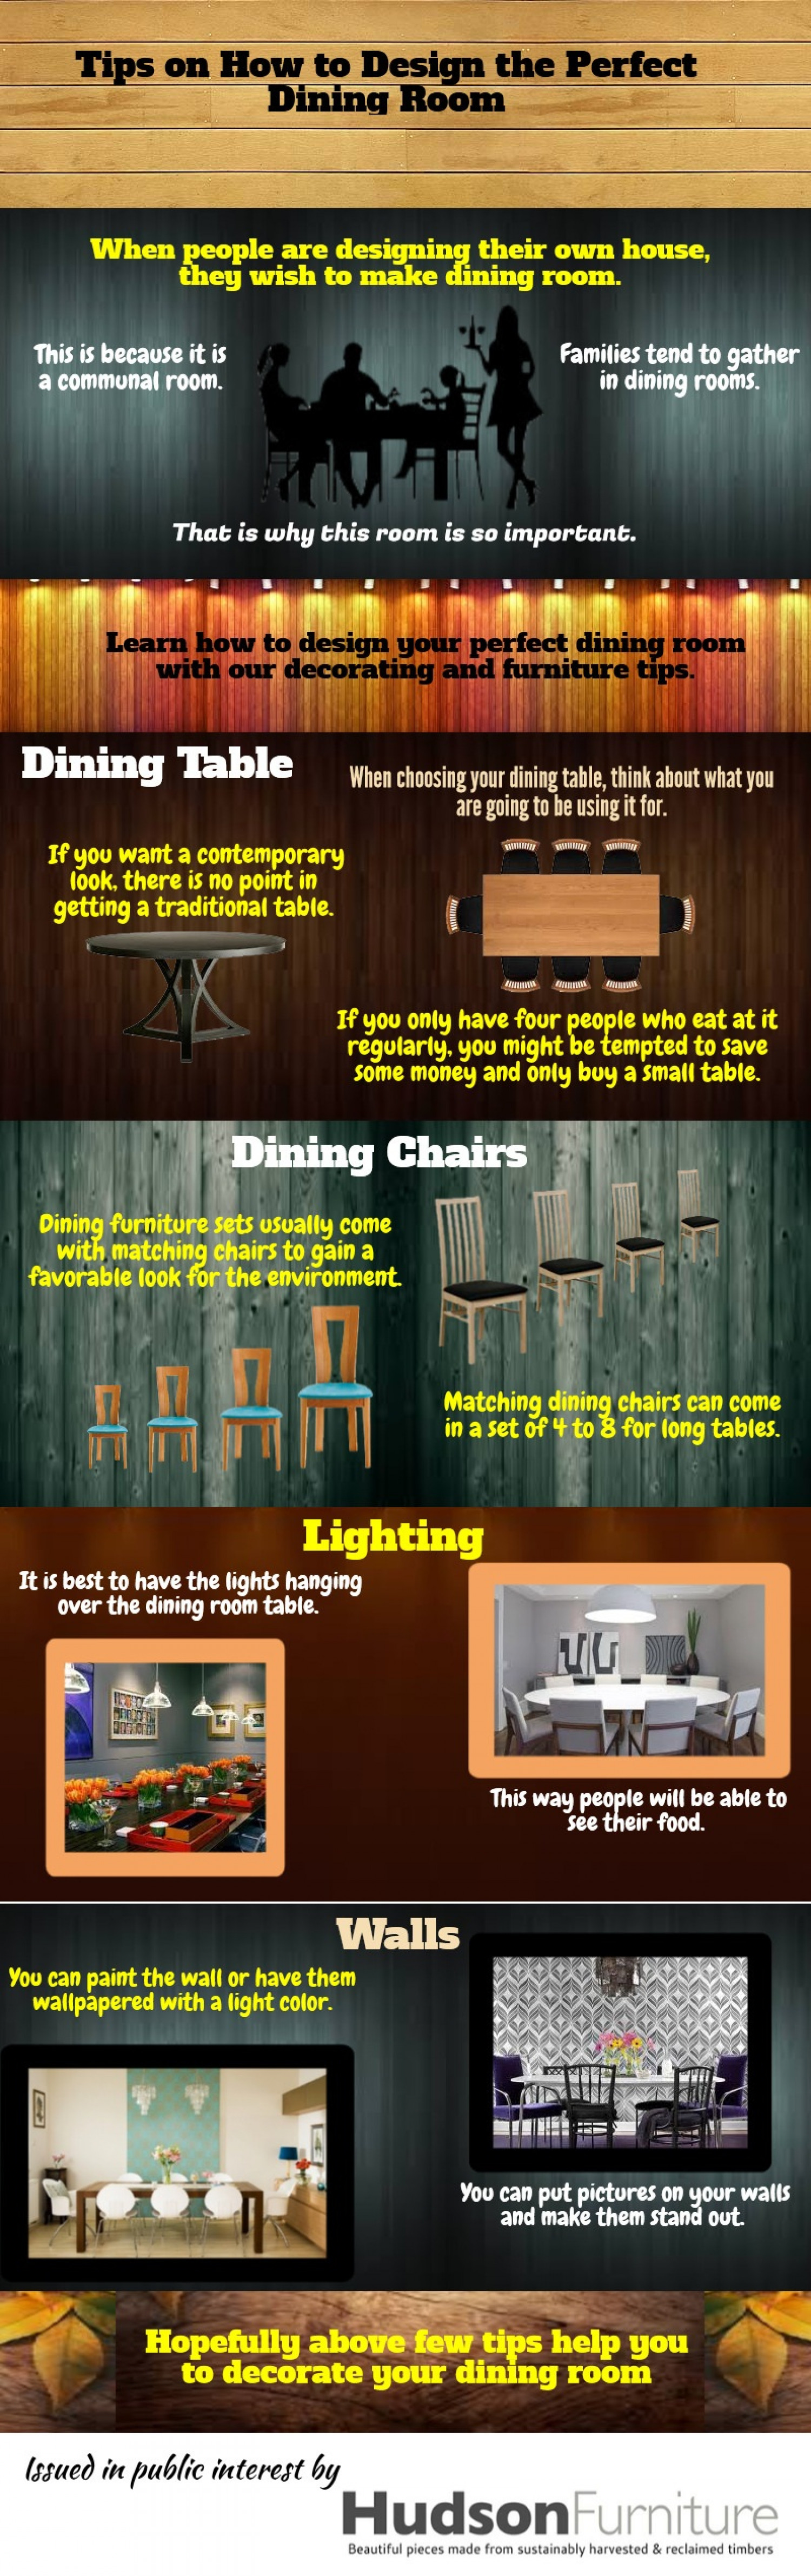 Tips on how to design the perfect dining room Infographic